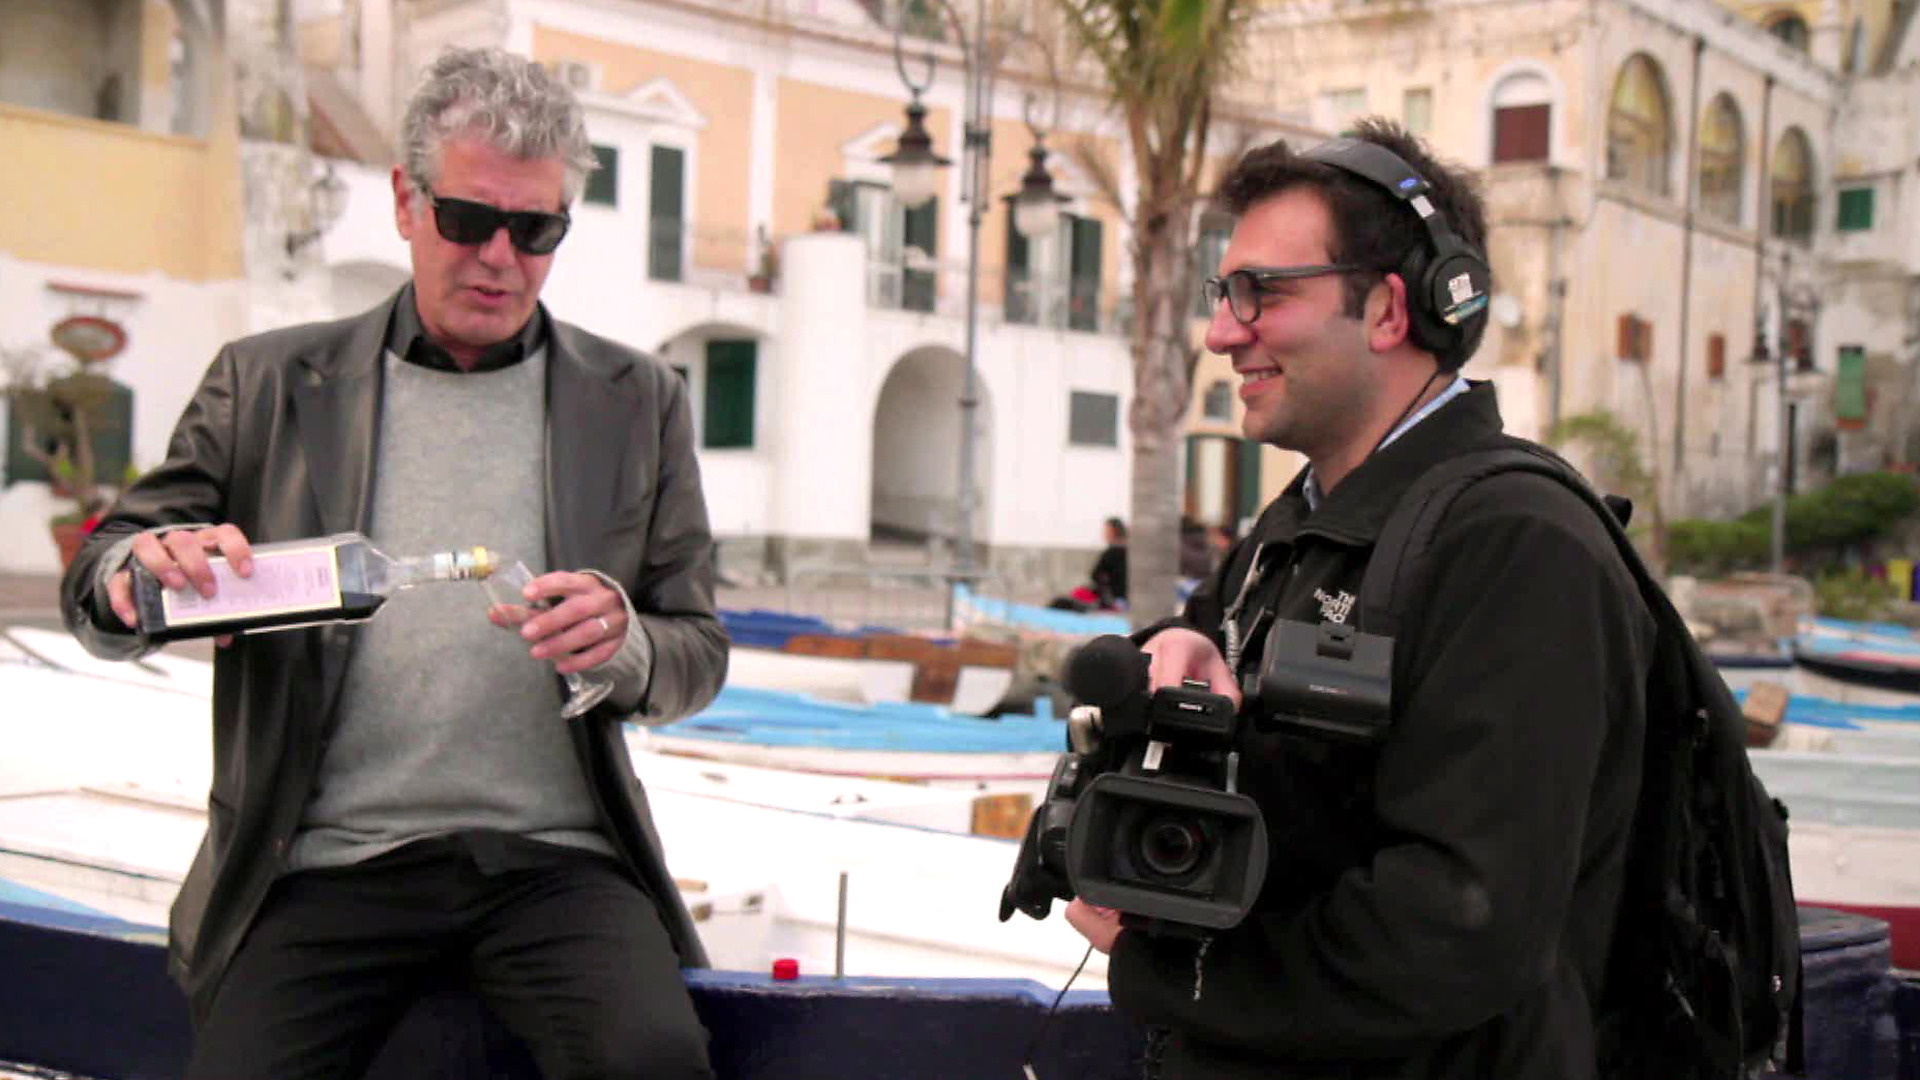 Anthony Bourdain talks to his producer.